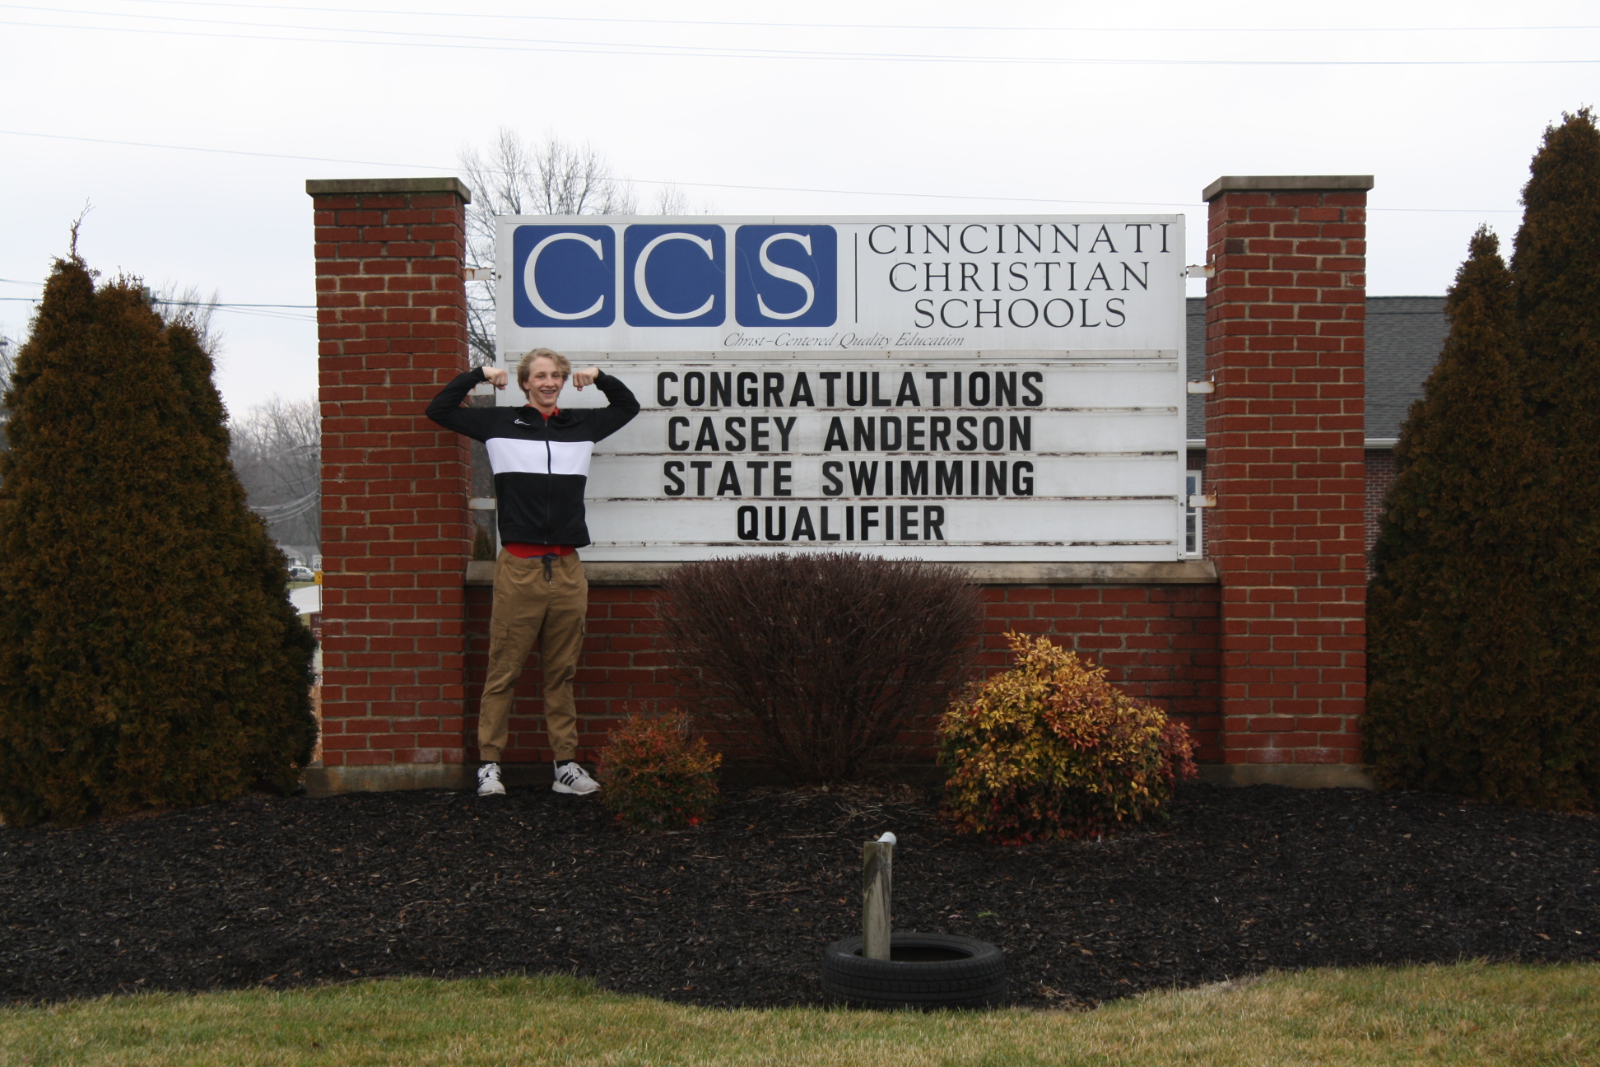 Congratulations to Casey Anderson, state swimming qualifier!